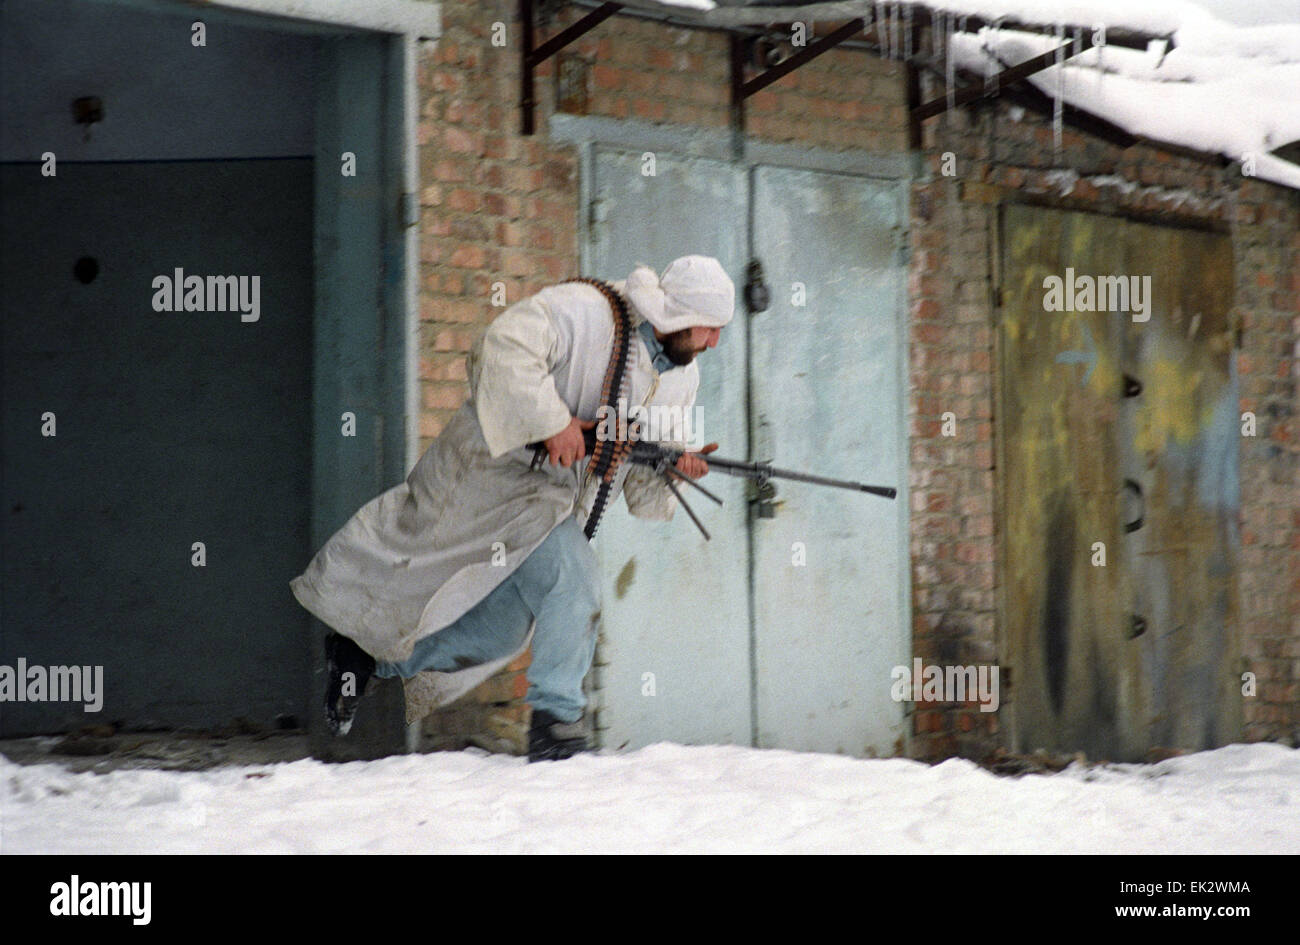 Grozny. A Chechen citizen soldier changes the position during a street combat. - Stock Image